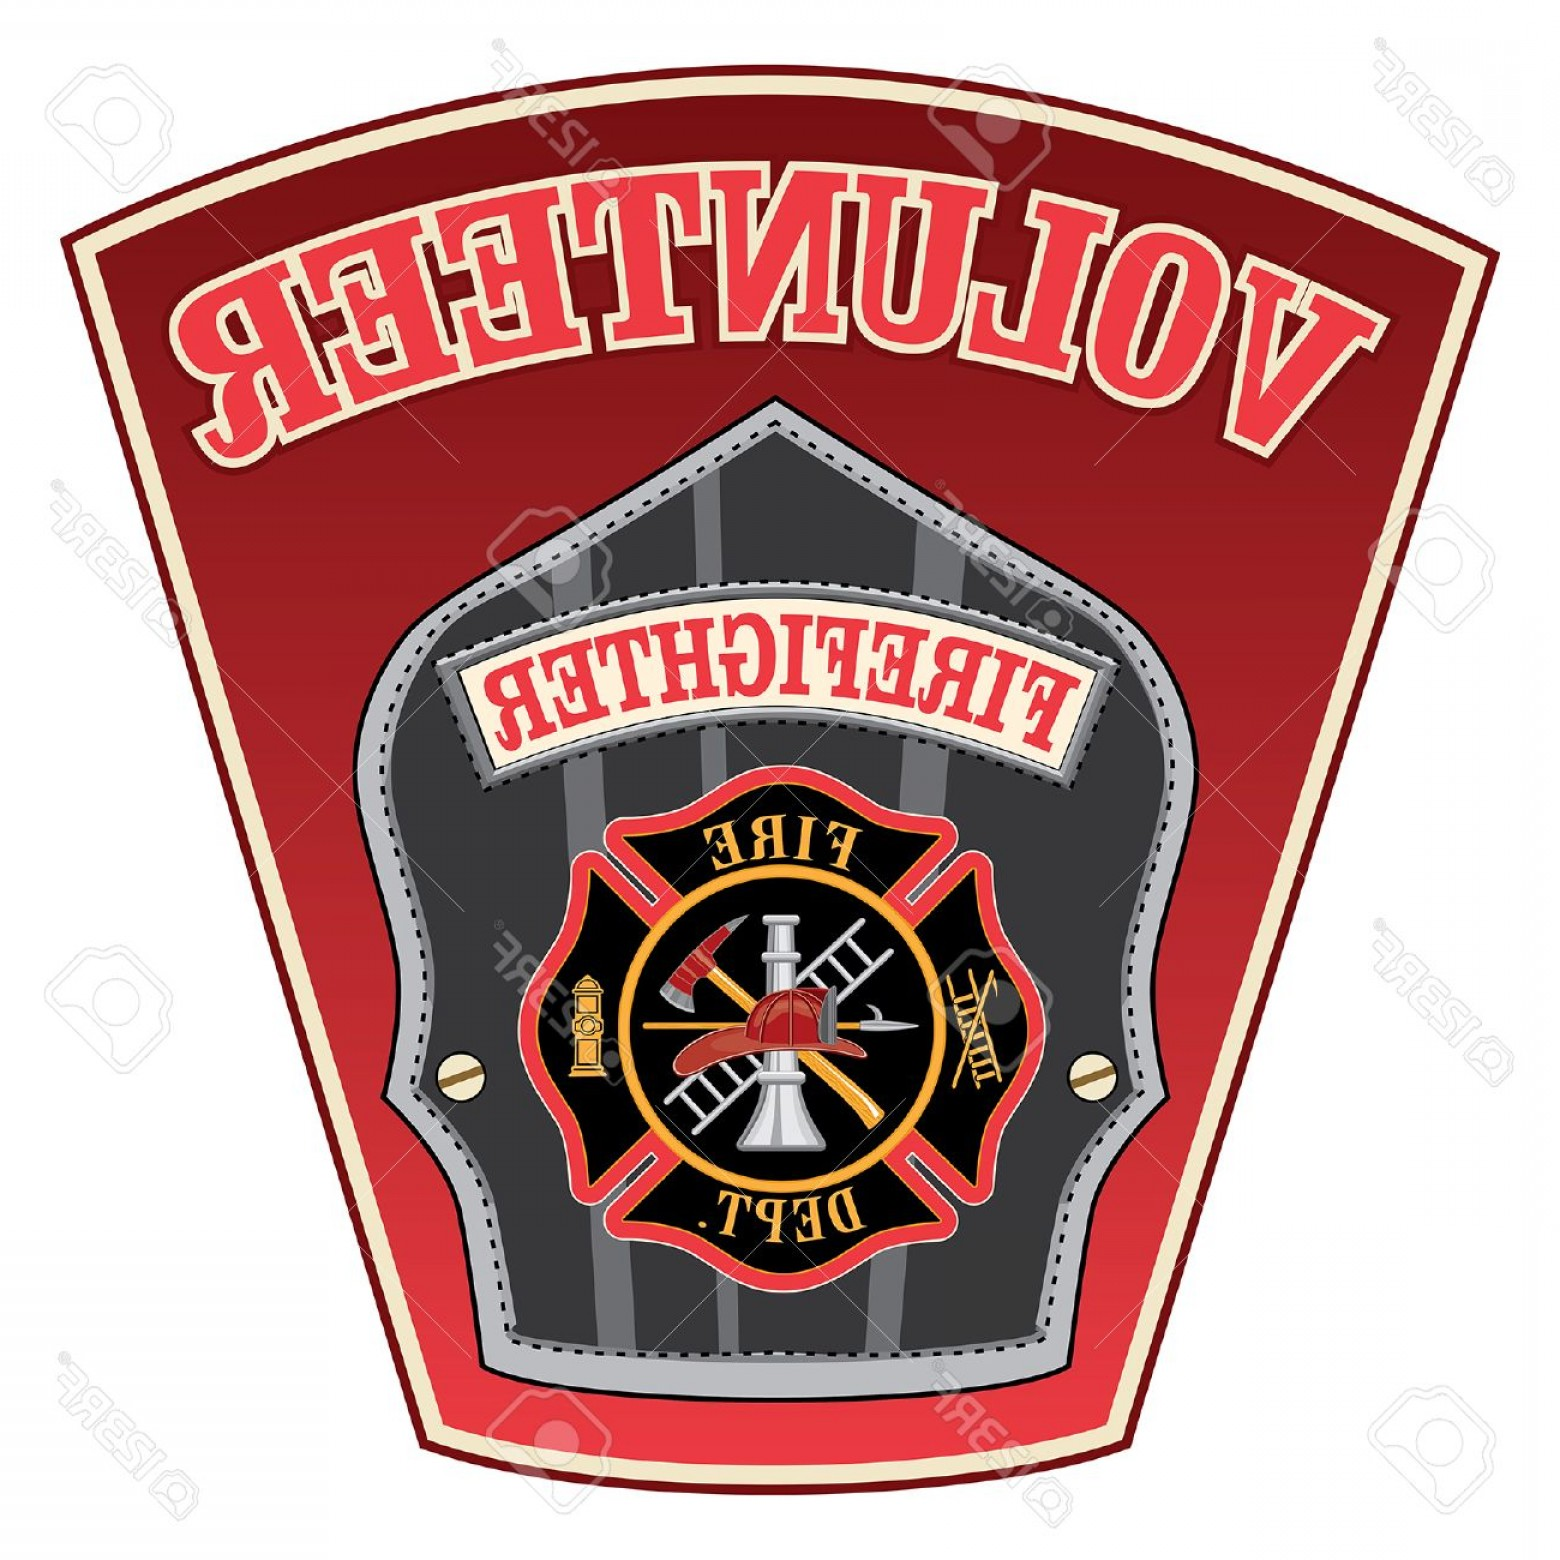 1560x1560 Photostock Vector Volunteer Firefighter Shield Is An Illustration